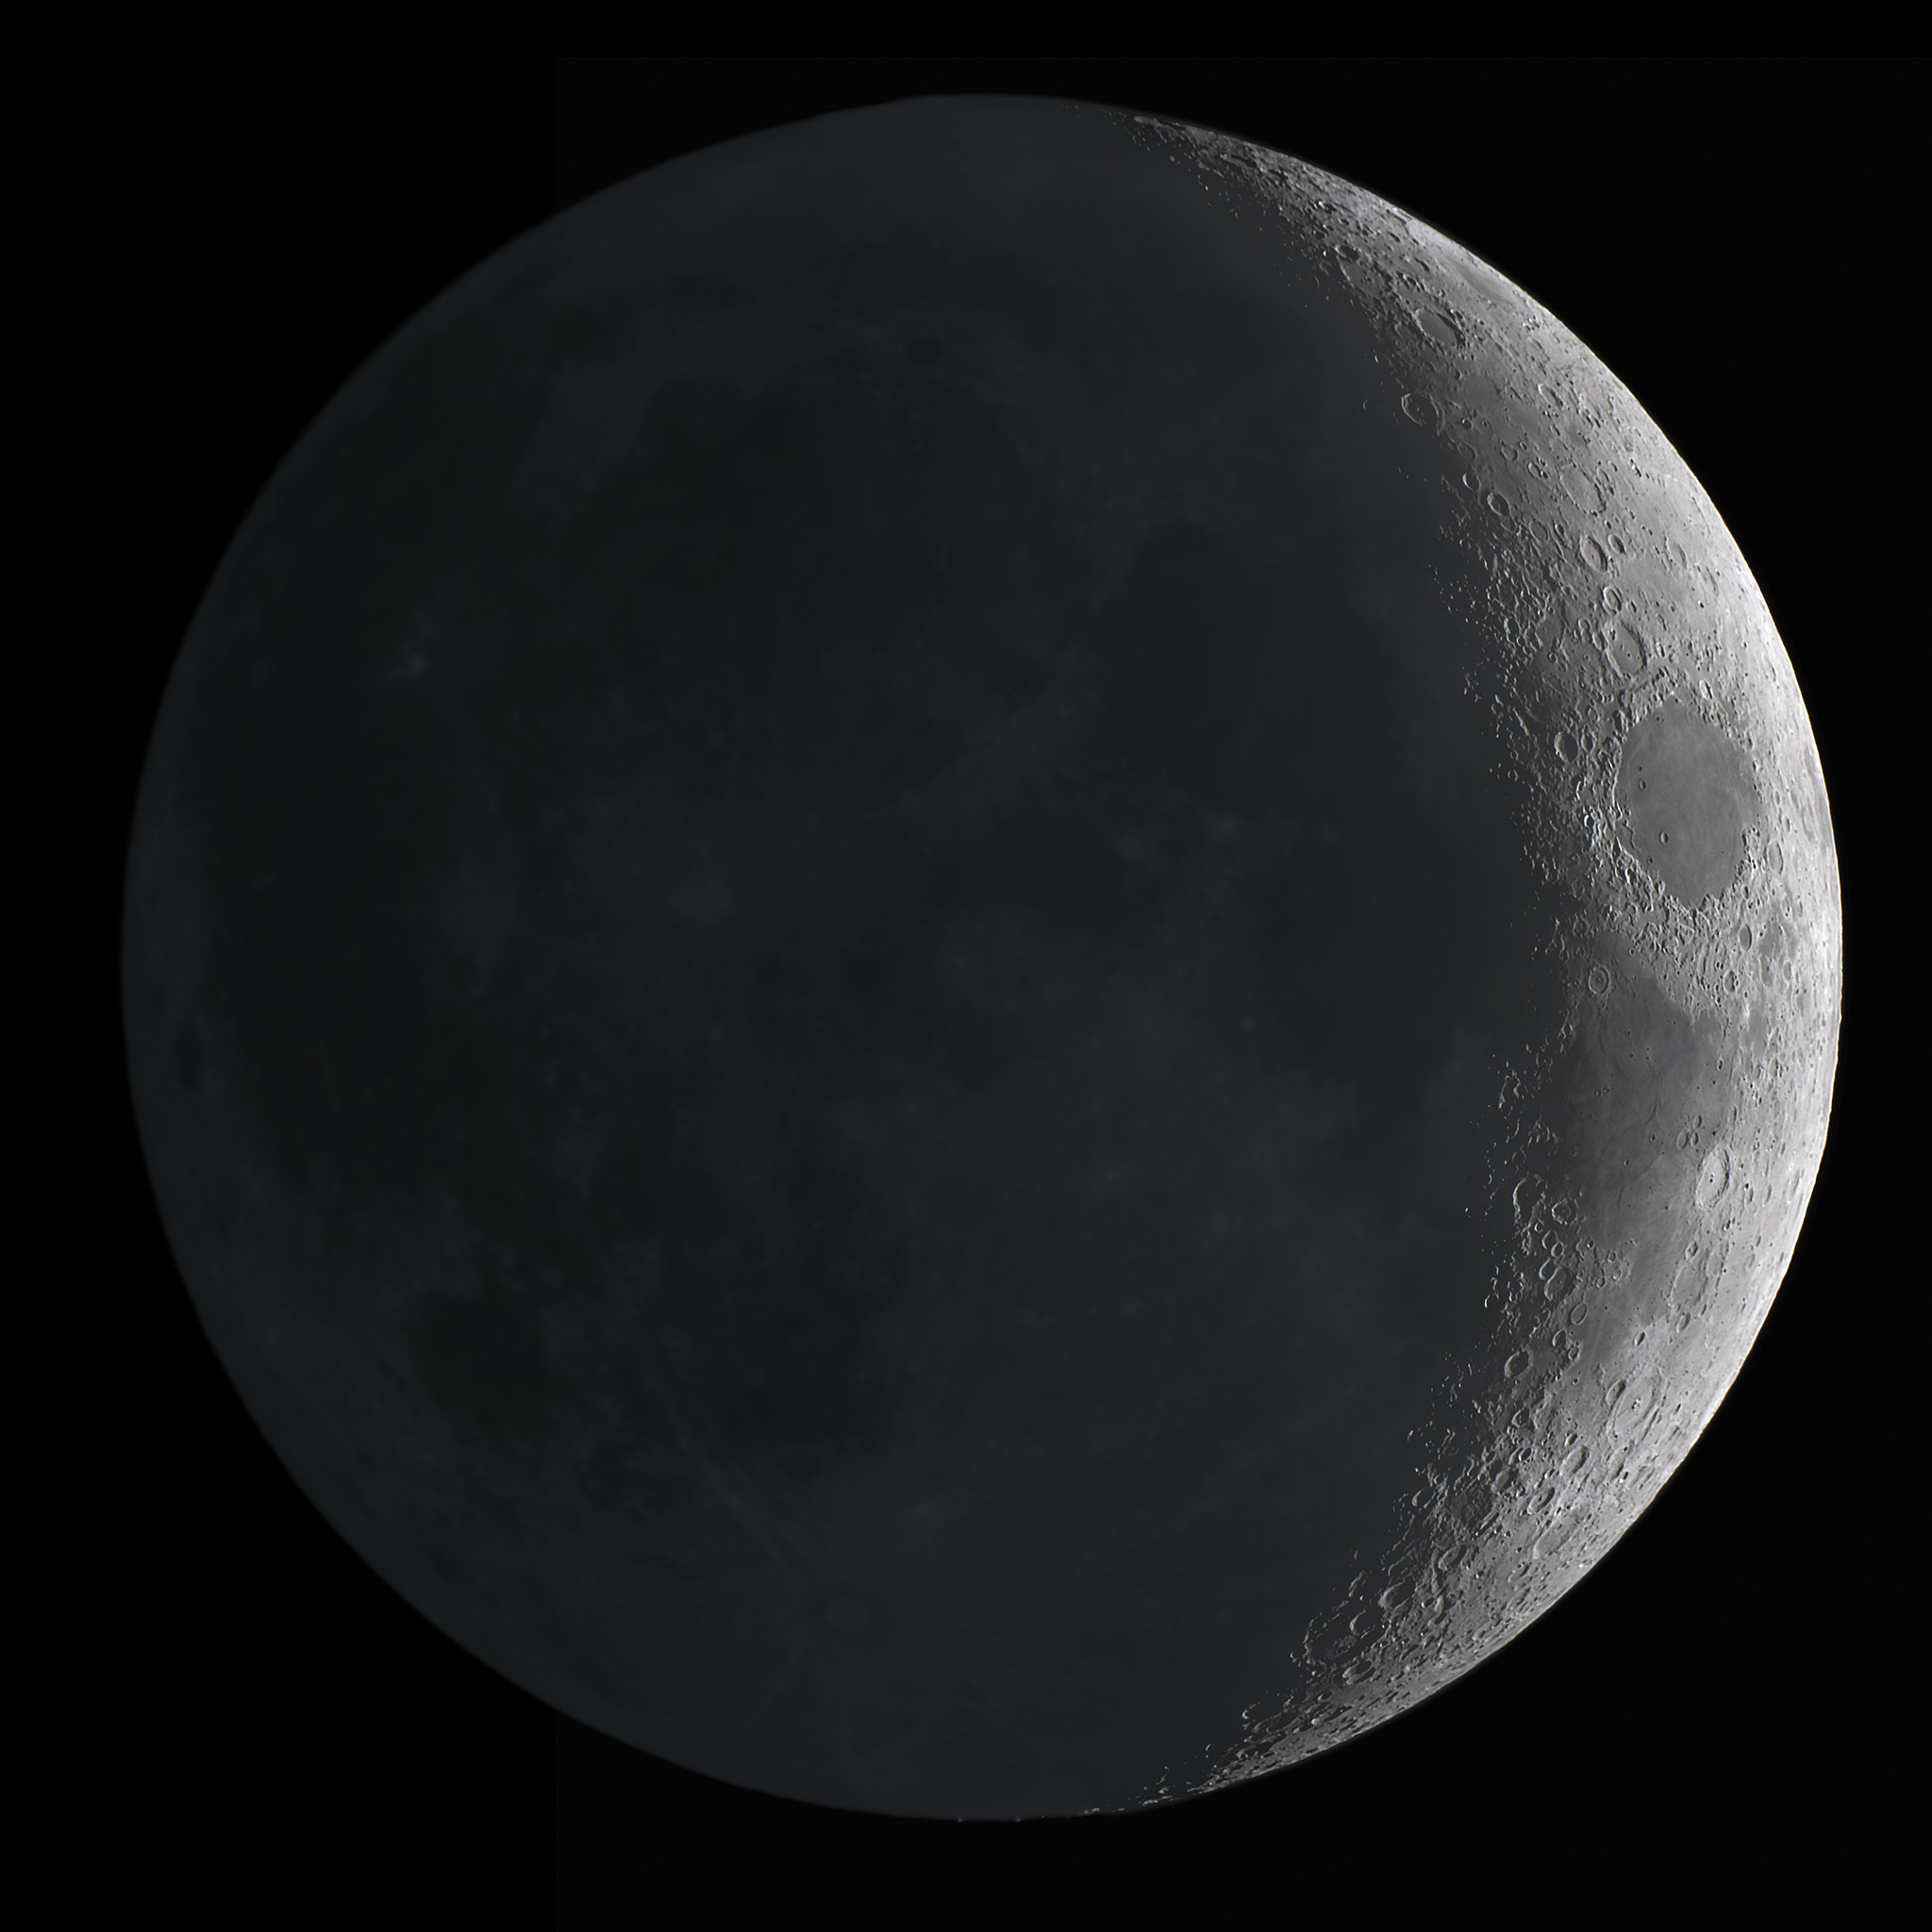 April Fools' eve Moon with earthshine